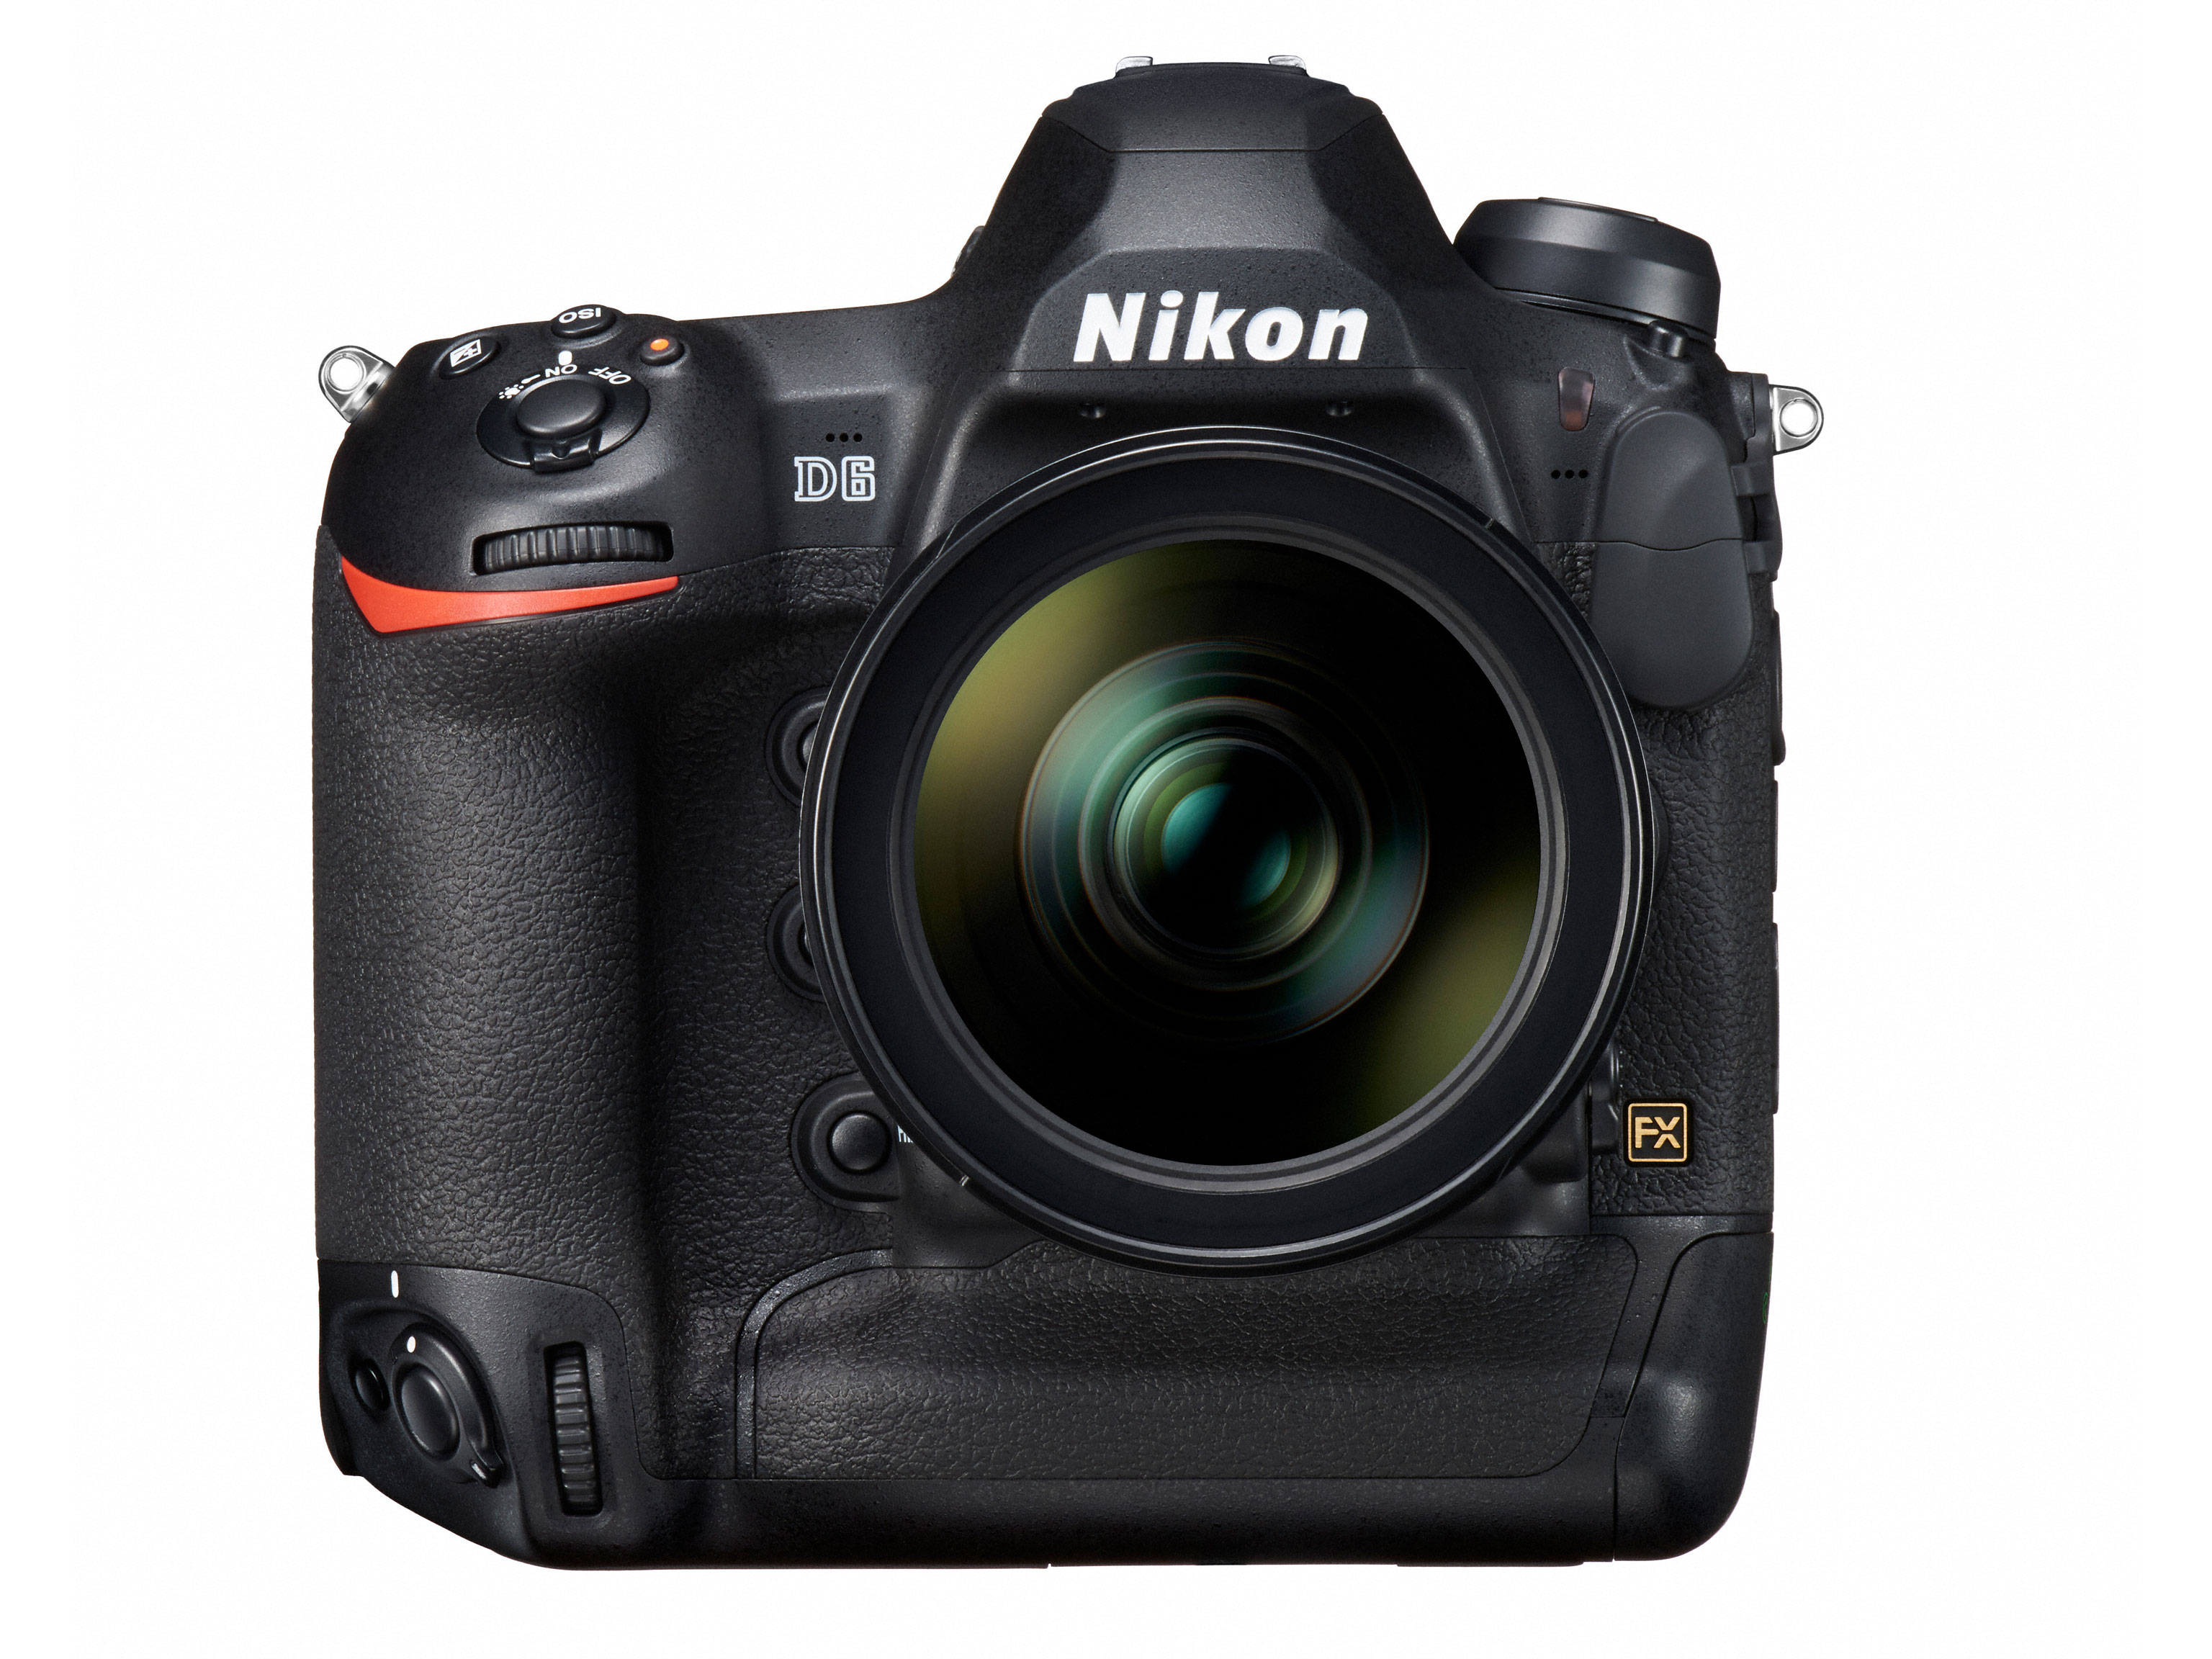 Nikon develops D6 flagship DSLR and AF-S Nikkor 120-300 mm 1:2.8 and introduces Z 24mm f1.8S